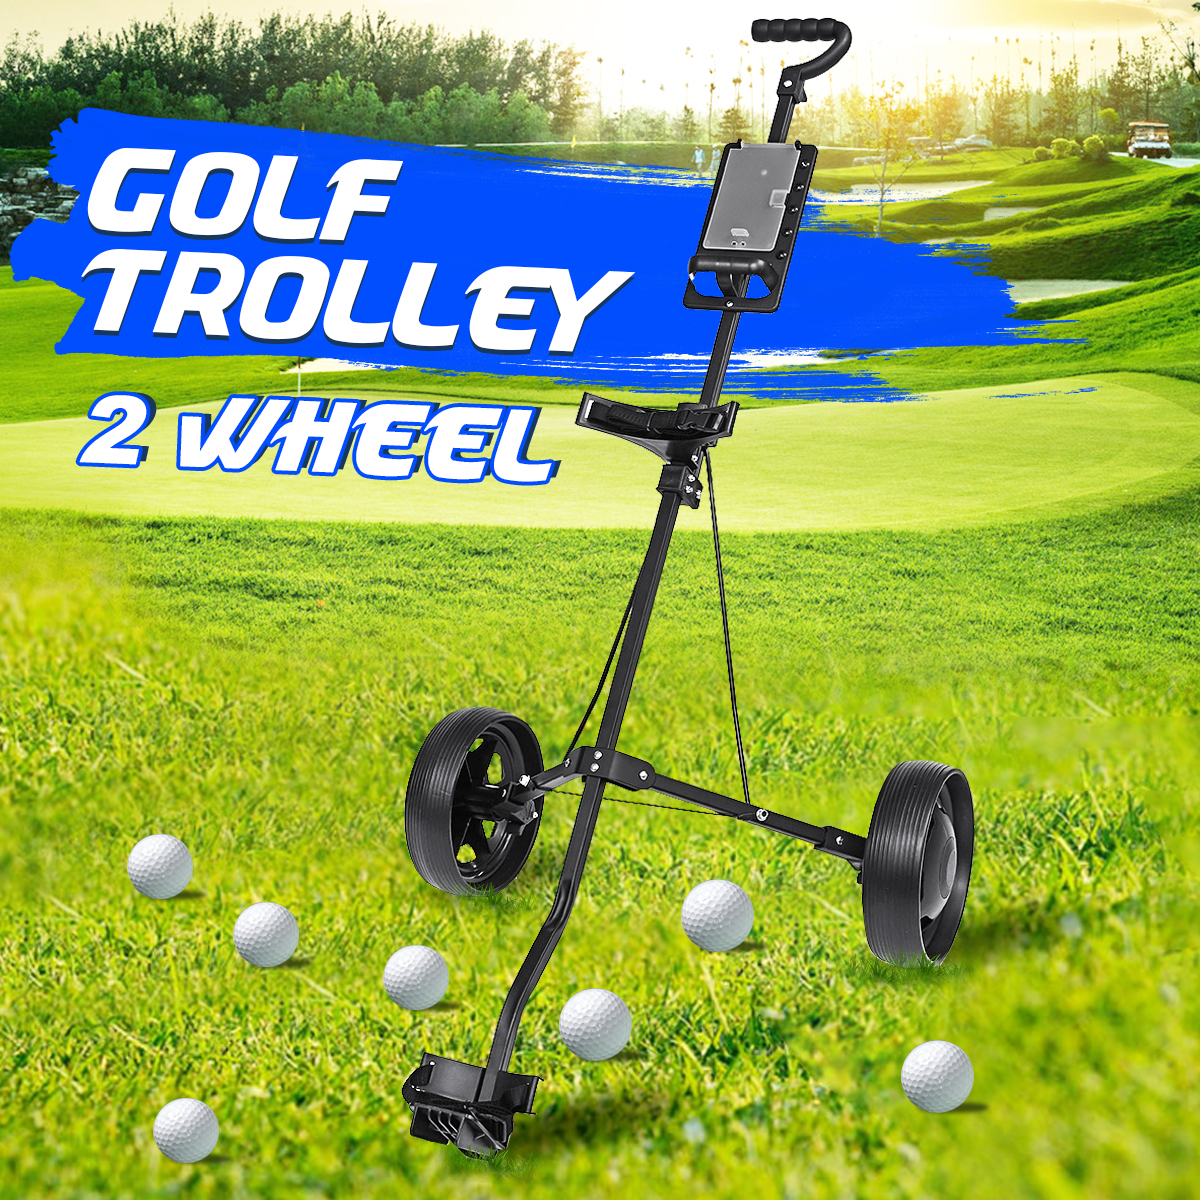 Golf Pull Cart Iron Black Adjustable Golf Trolley Cart 2 Wheels Push Pull Golf Cart Aluminium Alloy Foldable Trolley With Brake